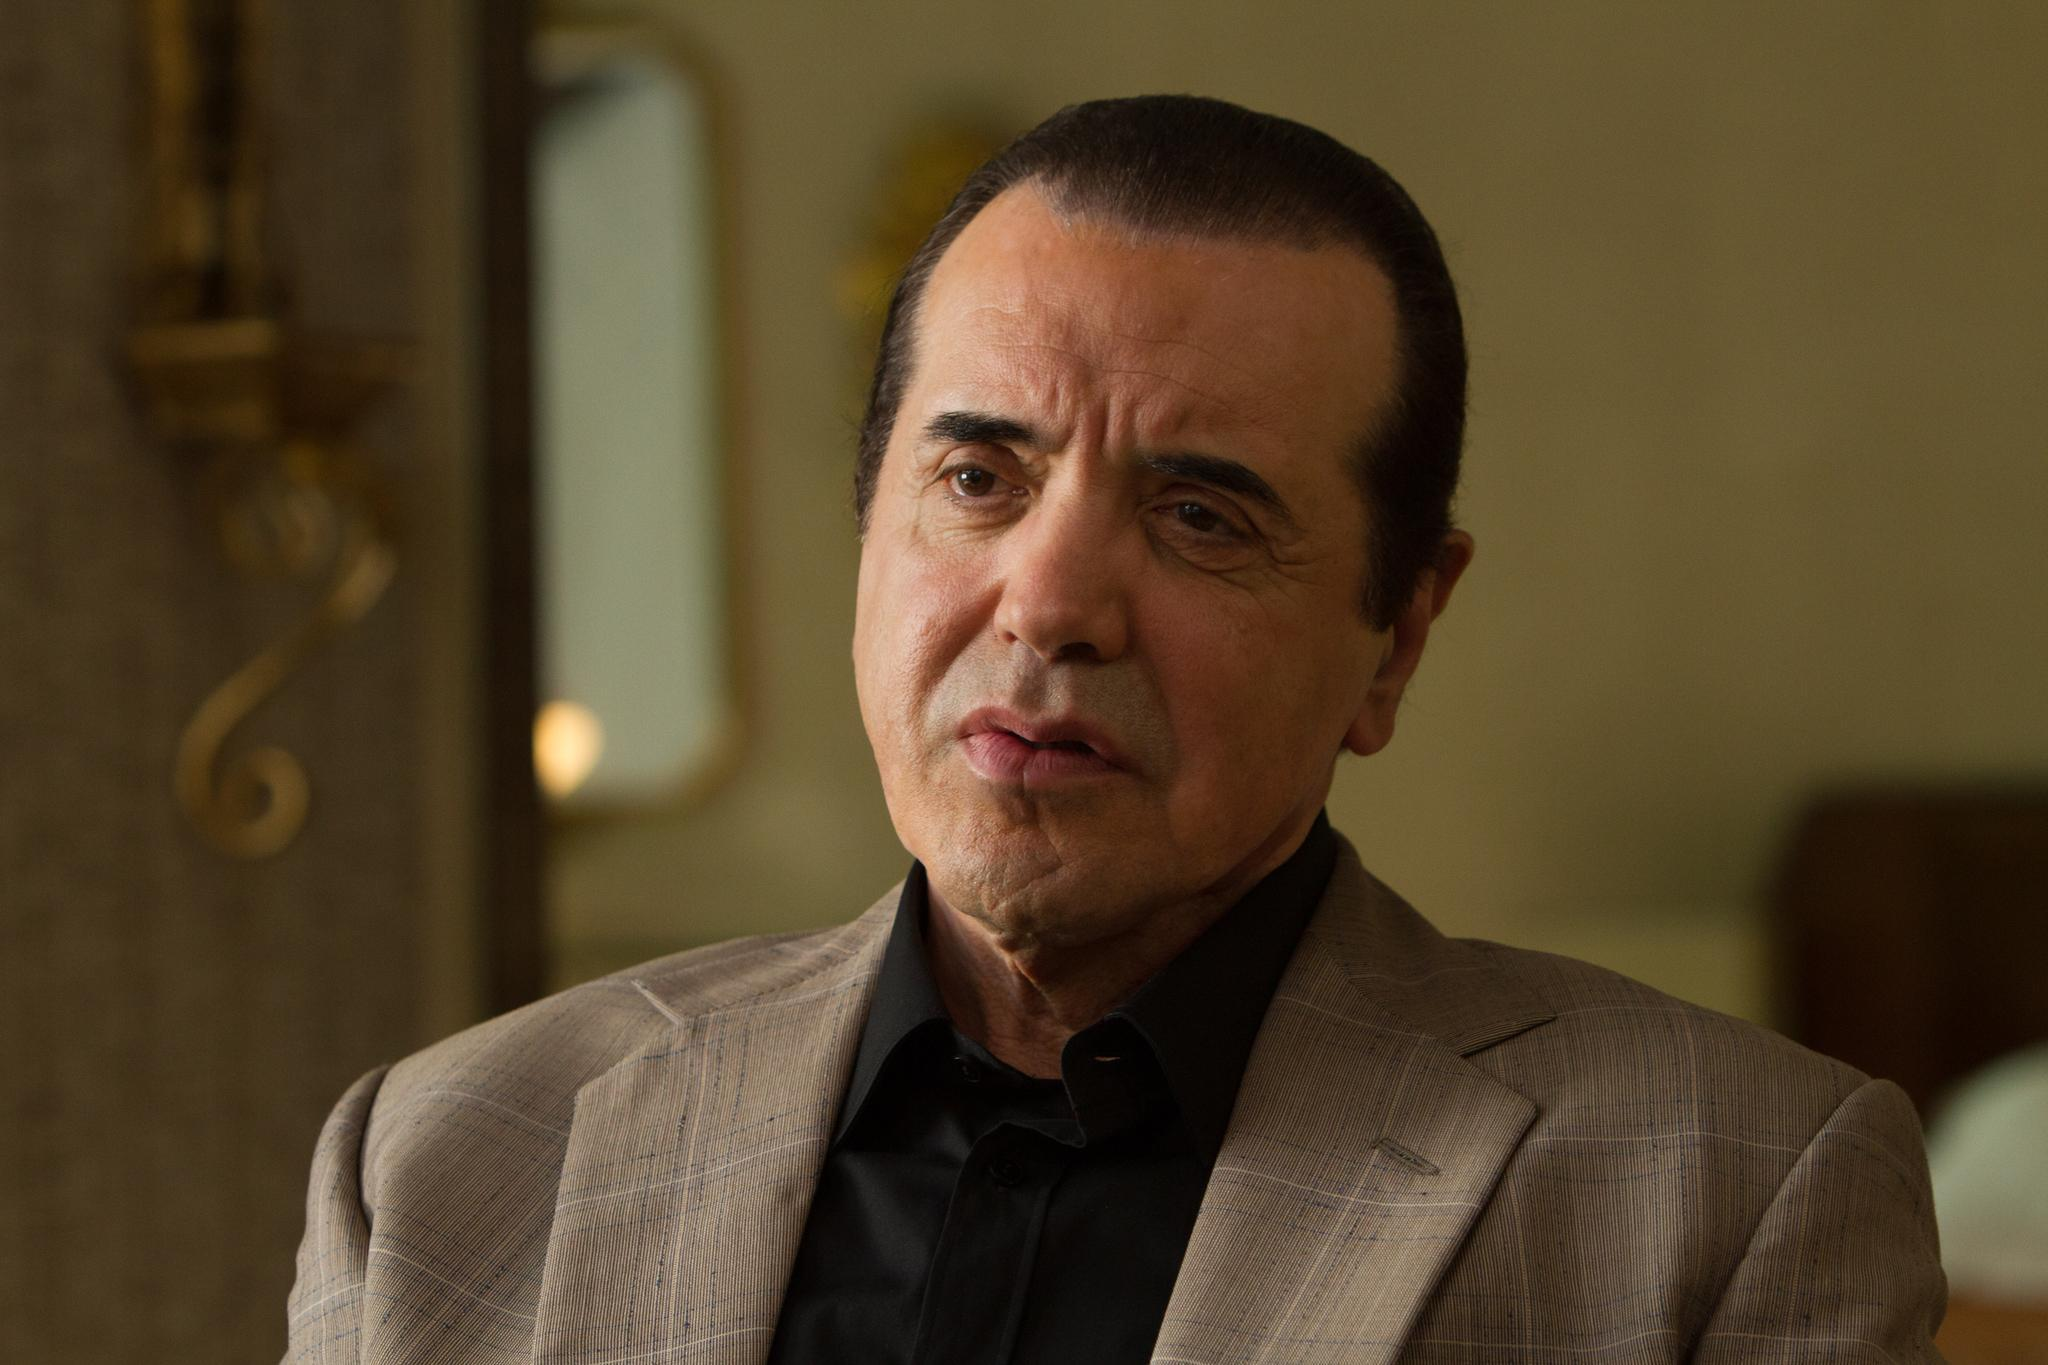 Chazz Palminteri Hd Wallpaper